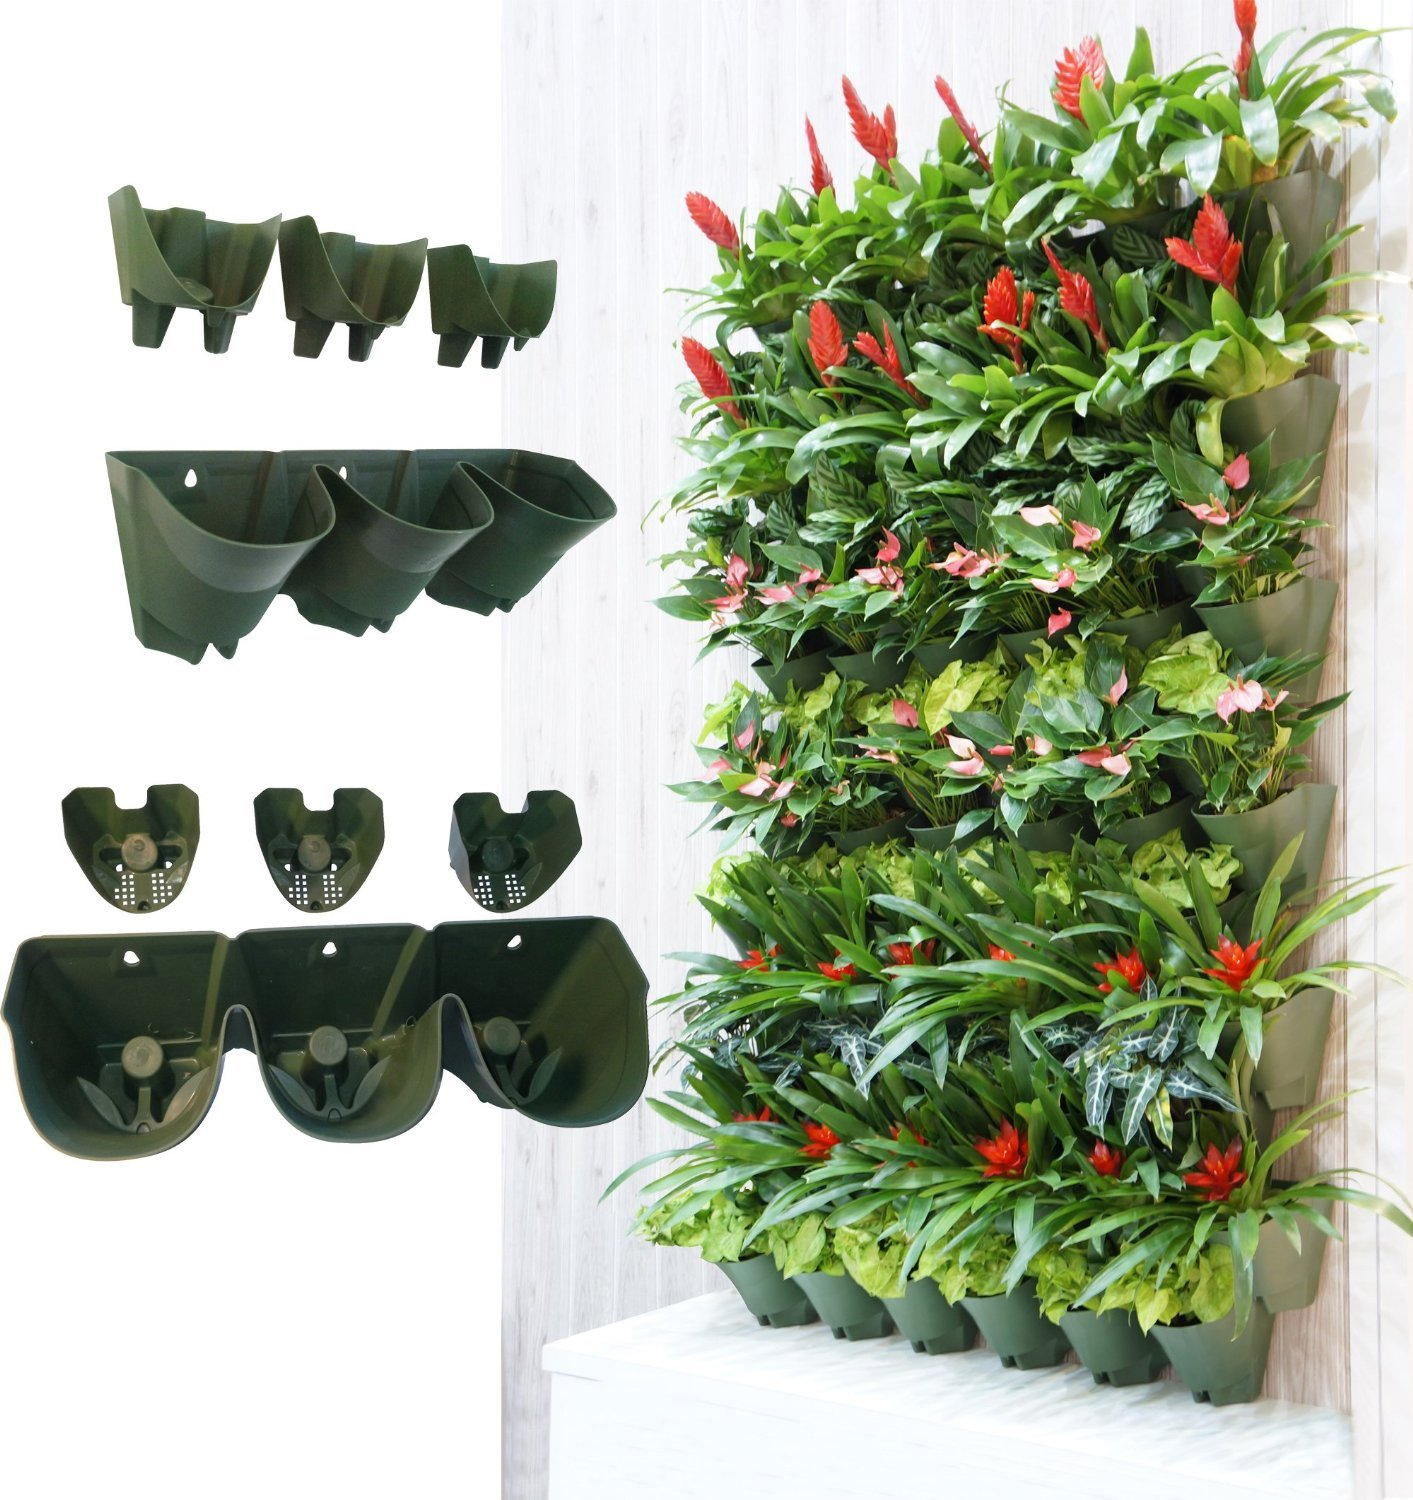 Self Watering Wall Mounted Vertical Planter,DIY Living Wall Flowerpot,Hanging Plants Holder,Indoor & Outdoor Decoration Planting Pot,One Set w/ 3-pockets and 5pc Filter Layer(14 sets per pack) by SHANGHAI WORTH